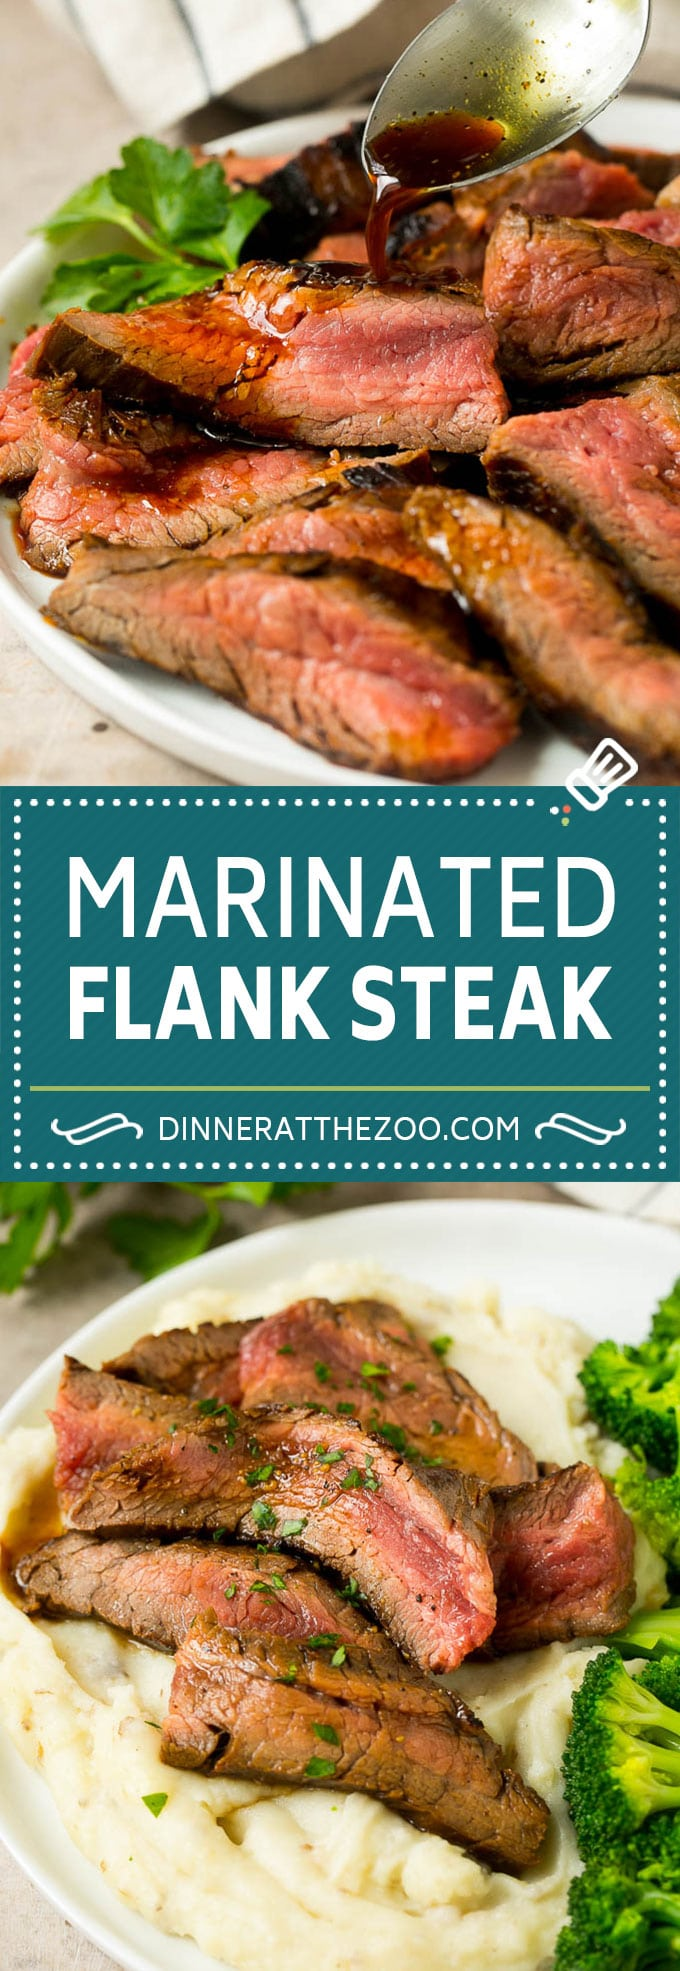 Flank Steak Marinade Recipe | Marinated Flank Steak | Marinated Steak | Steak Marinade #steak #beef #grilling #marinade #dinner #dinneratthezoo